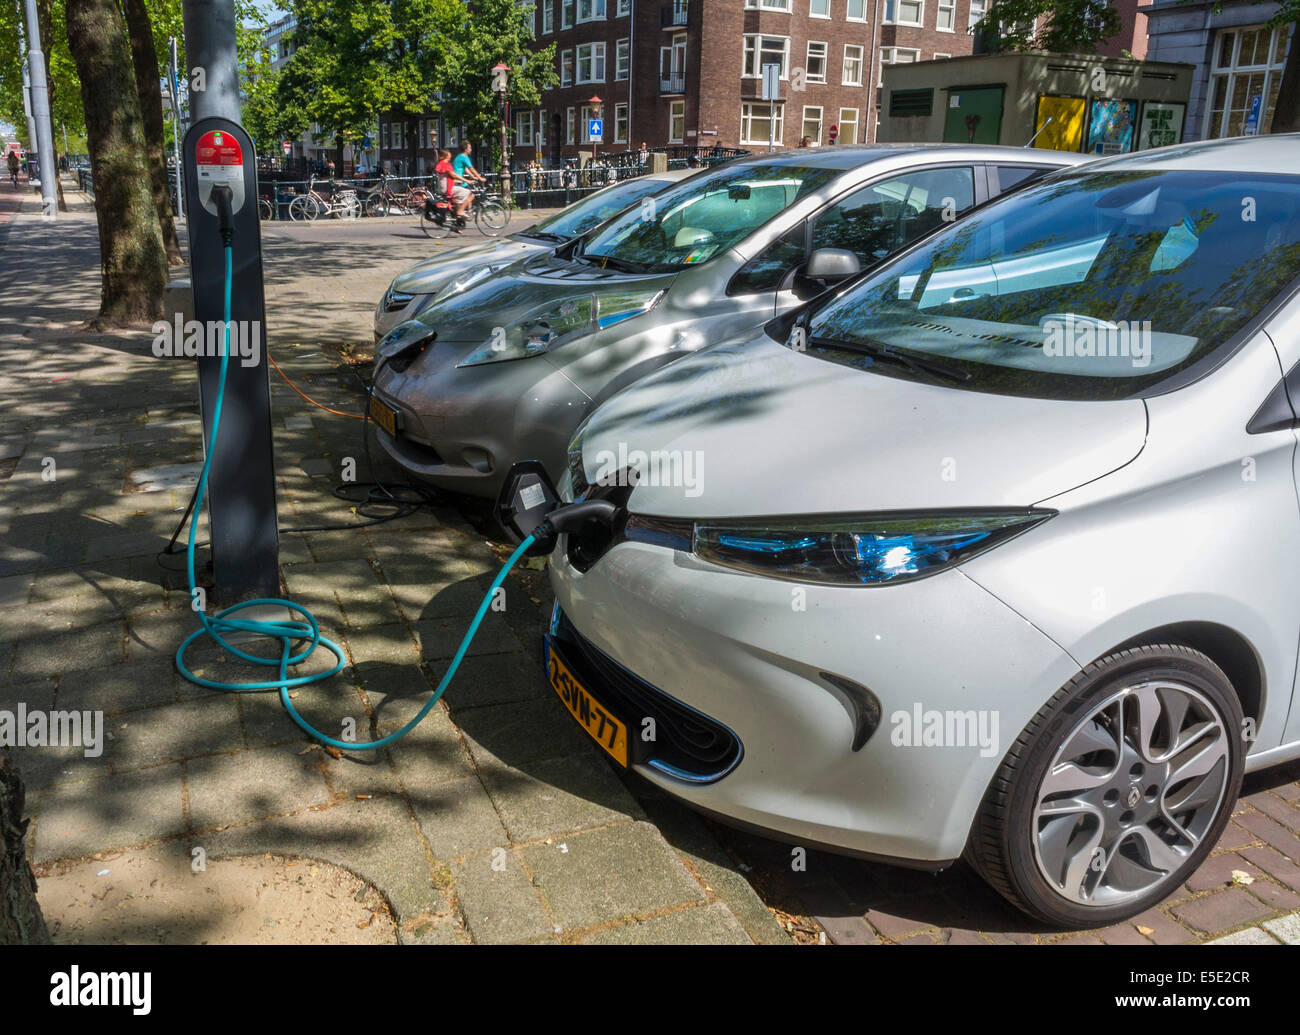 amsterdam, Holland,  The Netherlands, Parked, Electric Cars, Batteries Being Charged on Street Parking lot Stock Photo